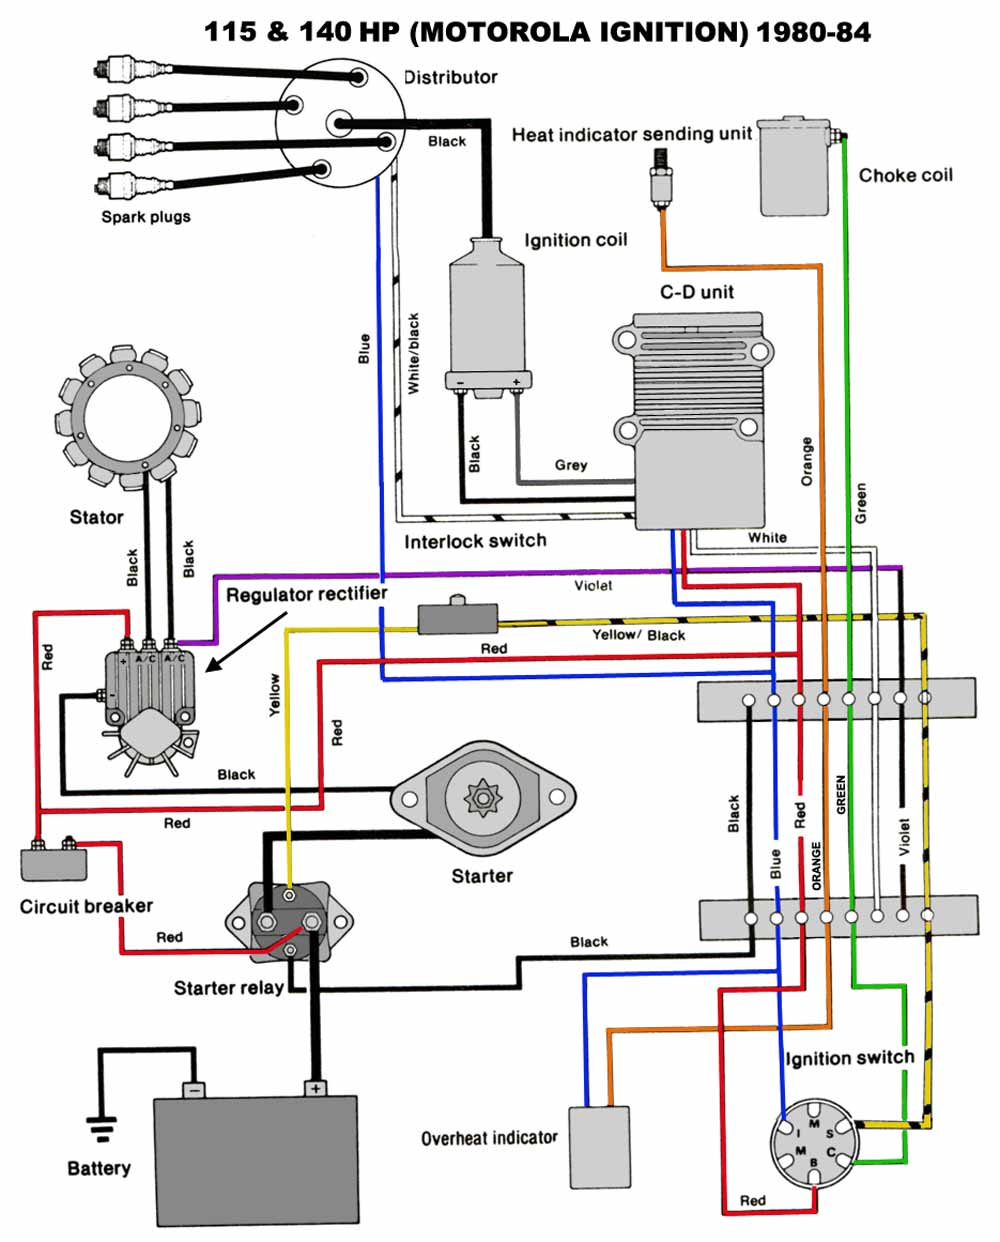 Chrysler Outboard Wiring Diagrams Mastertech Marine Vanguard Key Diagram 115 140 Hp Motorola Ignition 1980 84